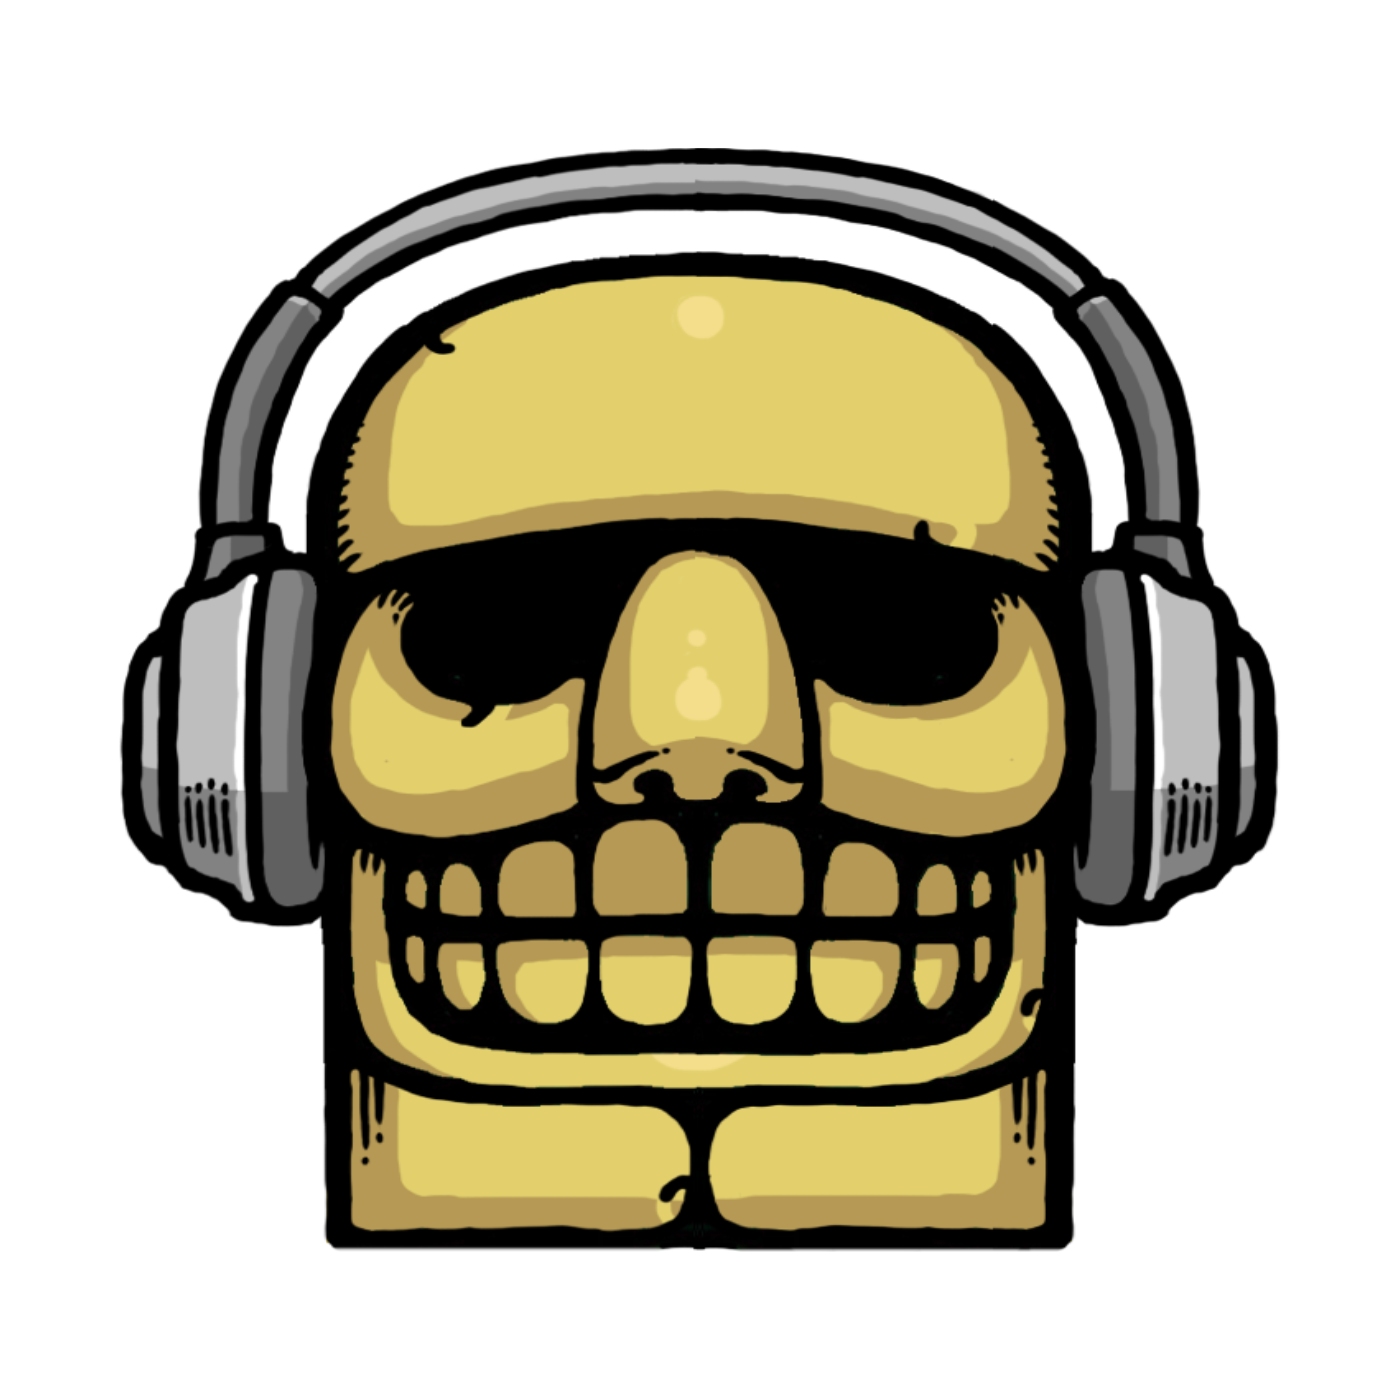 The Spelunky Showlike | Listen to the Most Popular Podcasts on OwlTail